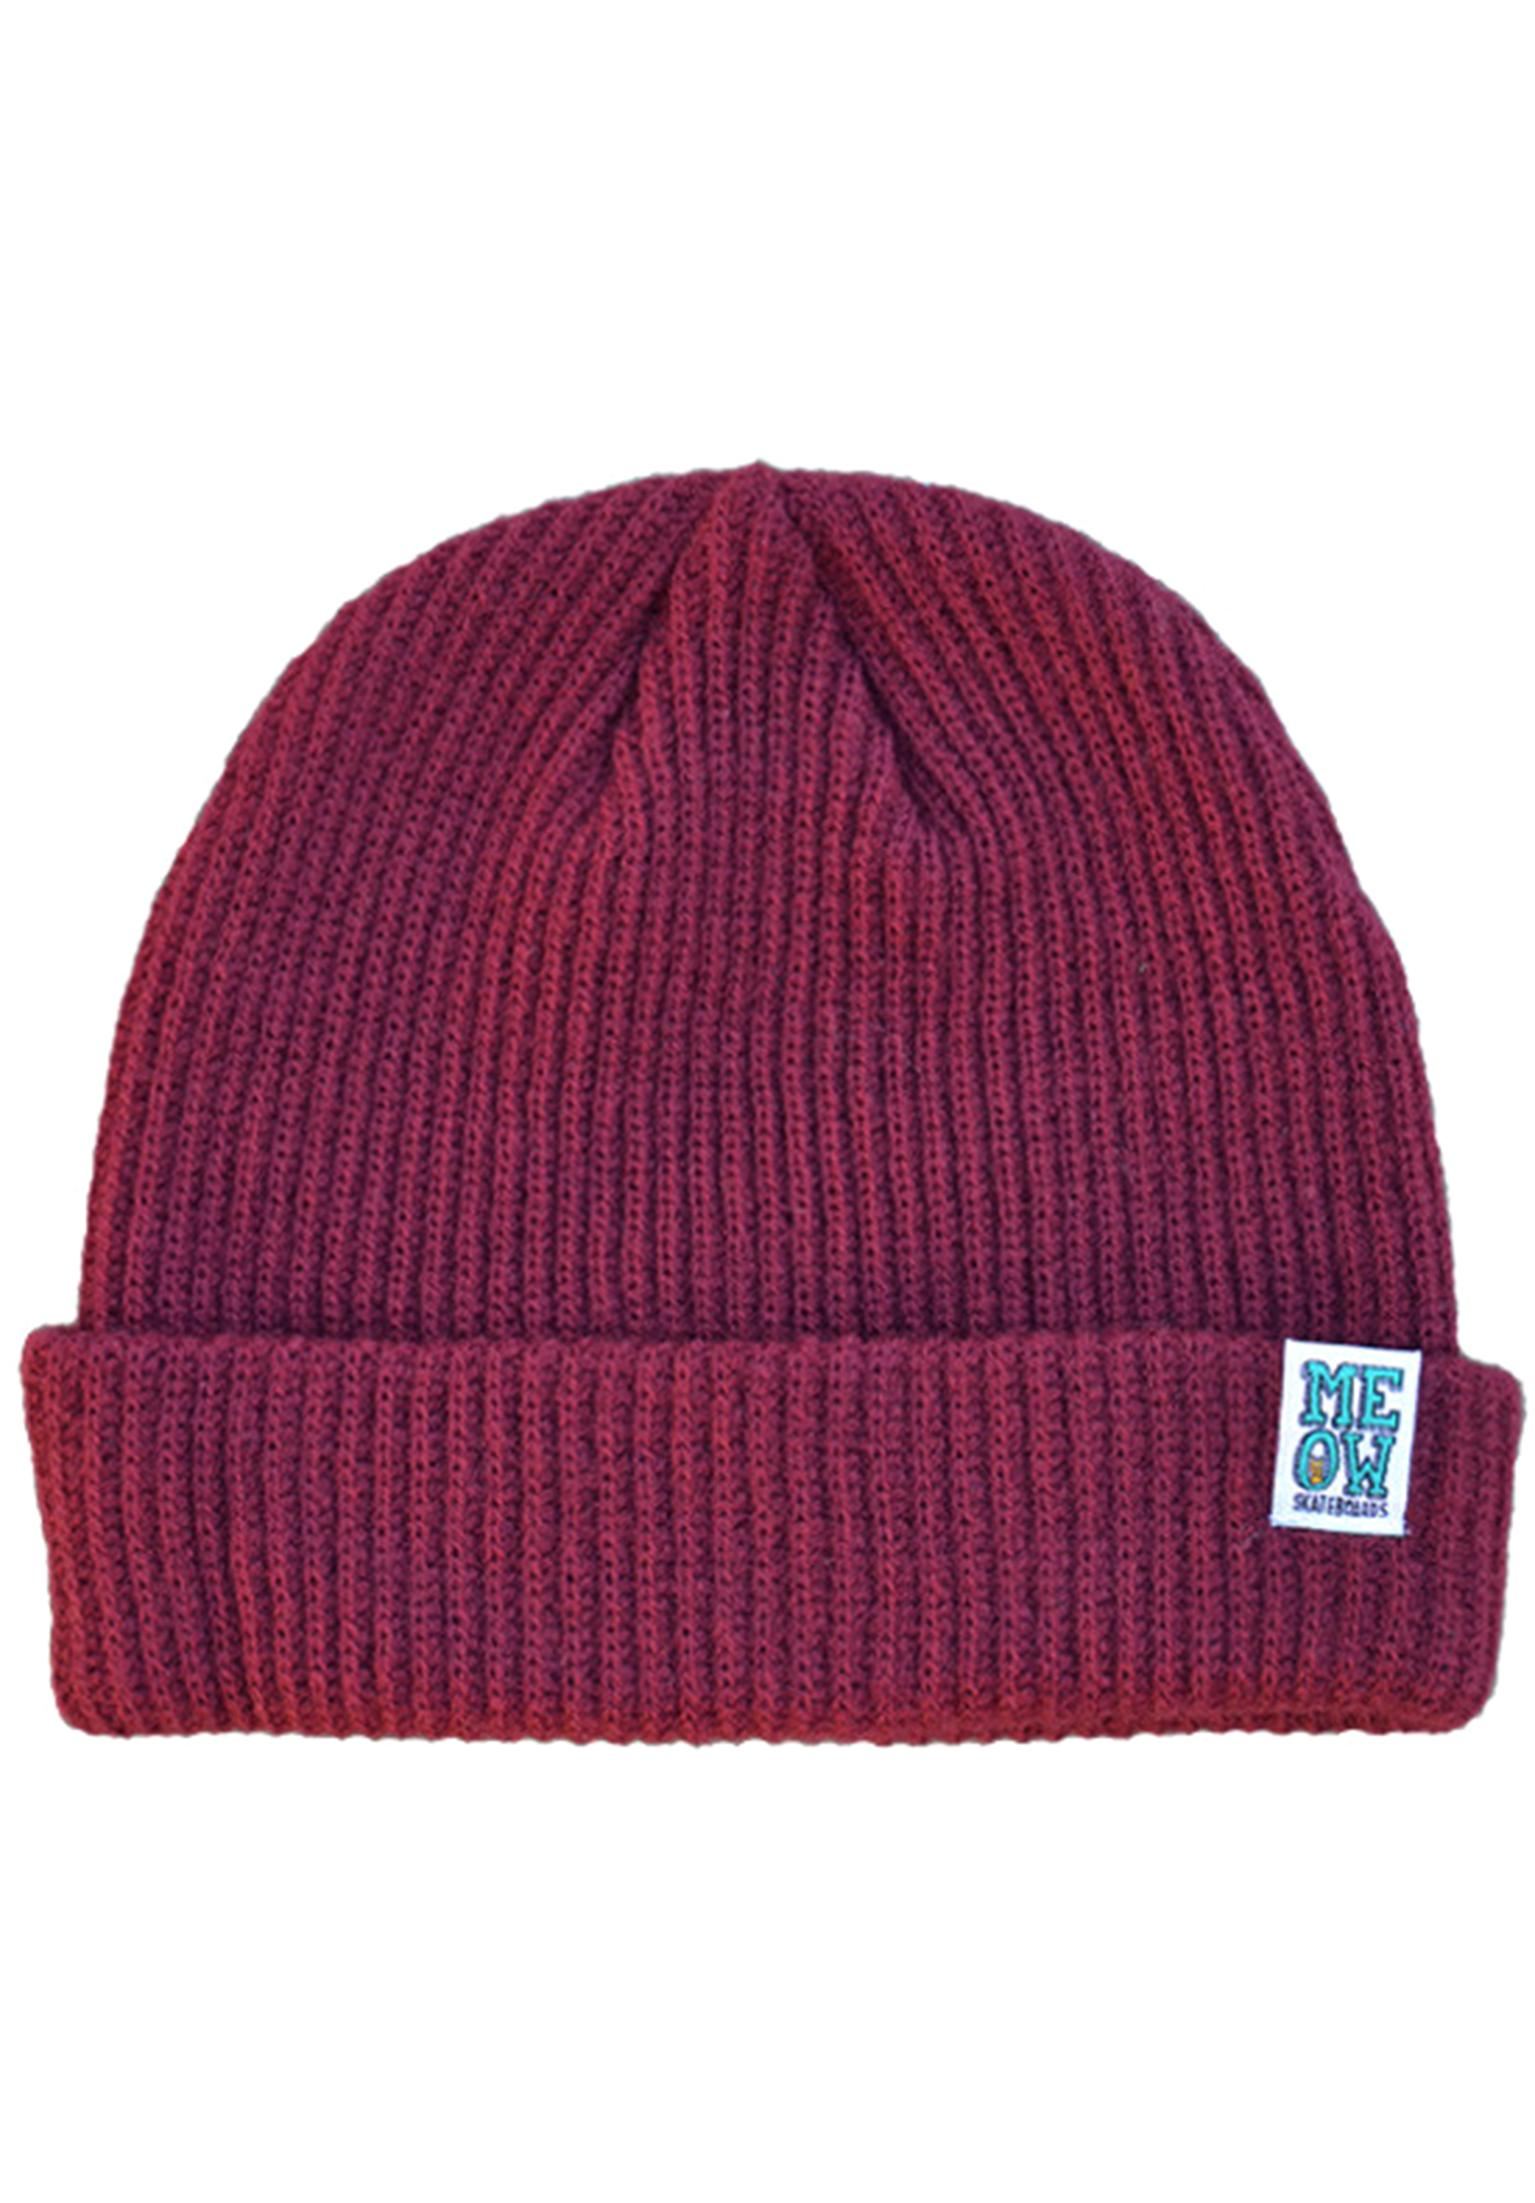 118d1fb74058f Get Beanies for Men in the Titus Onlineshop